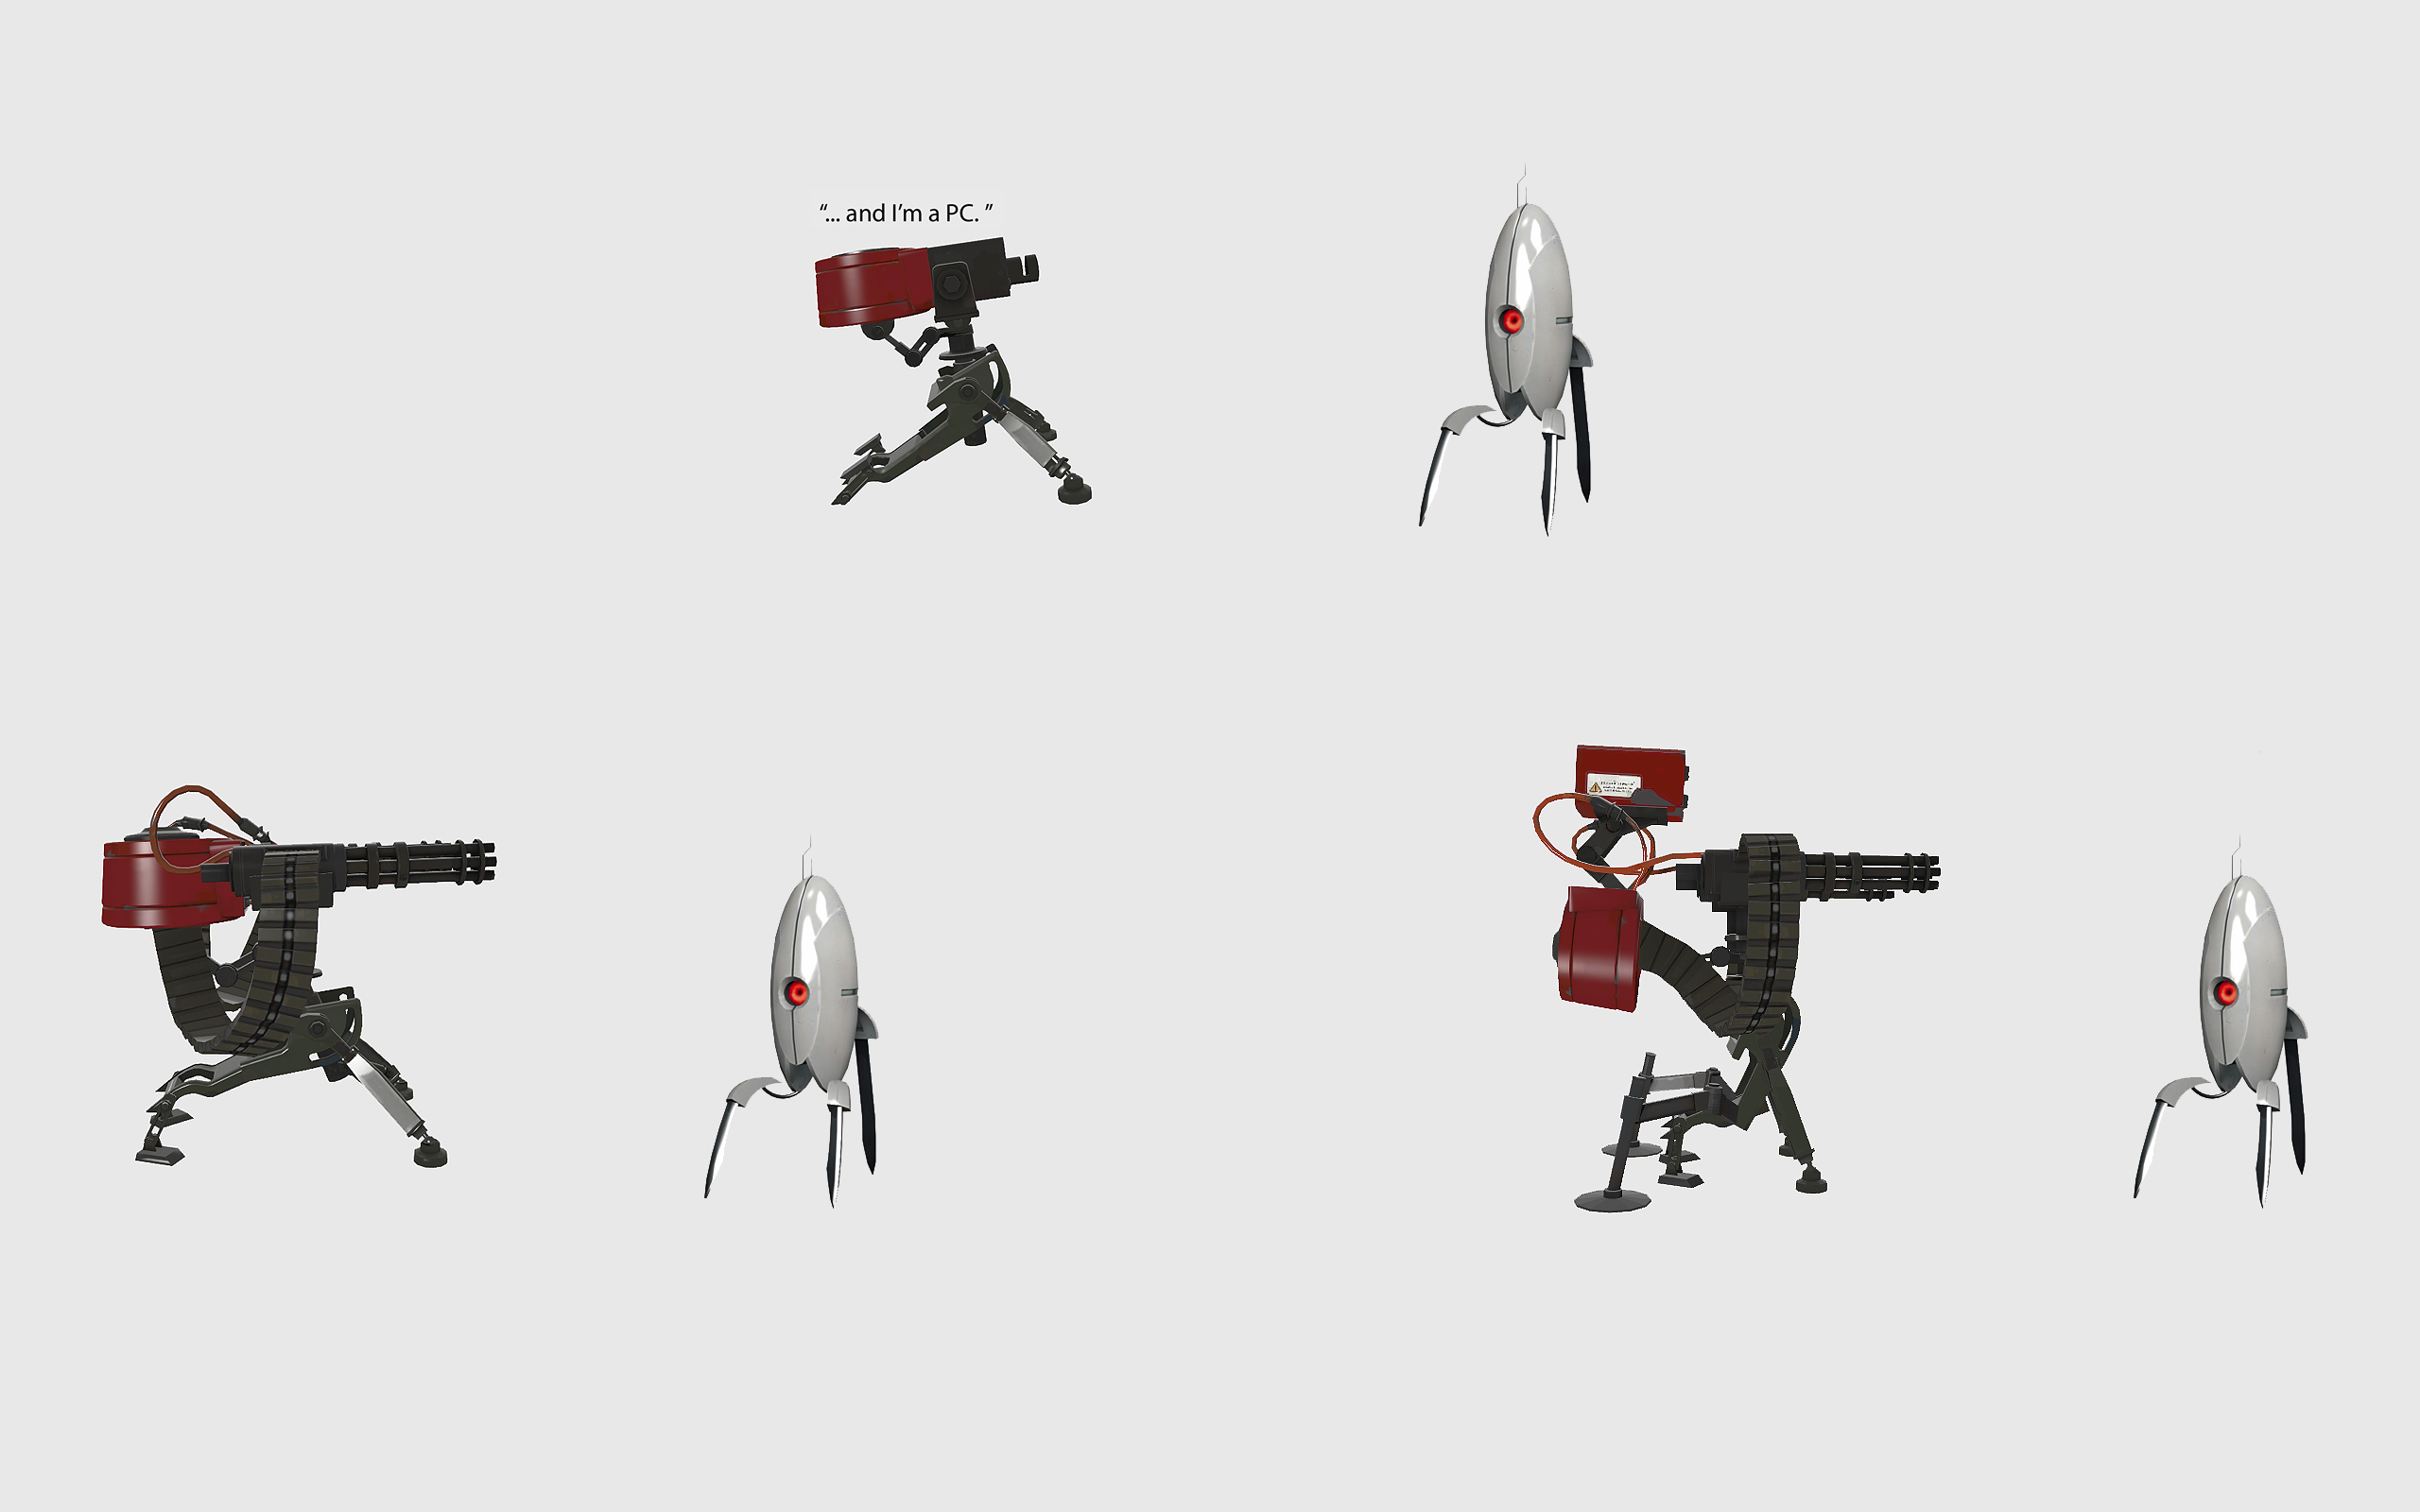 Team Fortress 2 Full Hd Wallpaper And Background